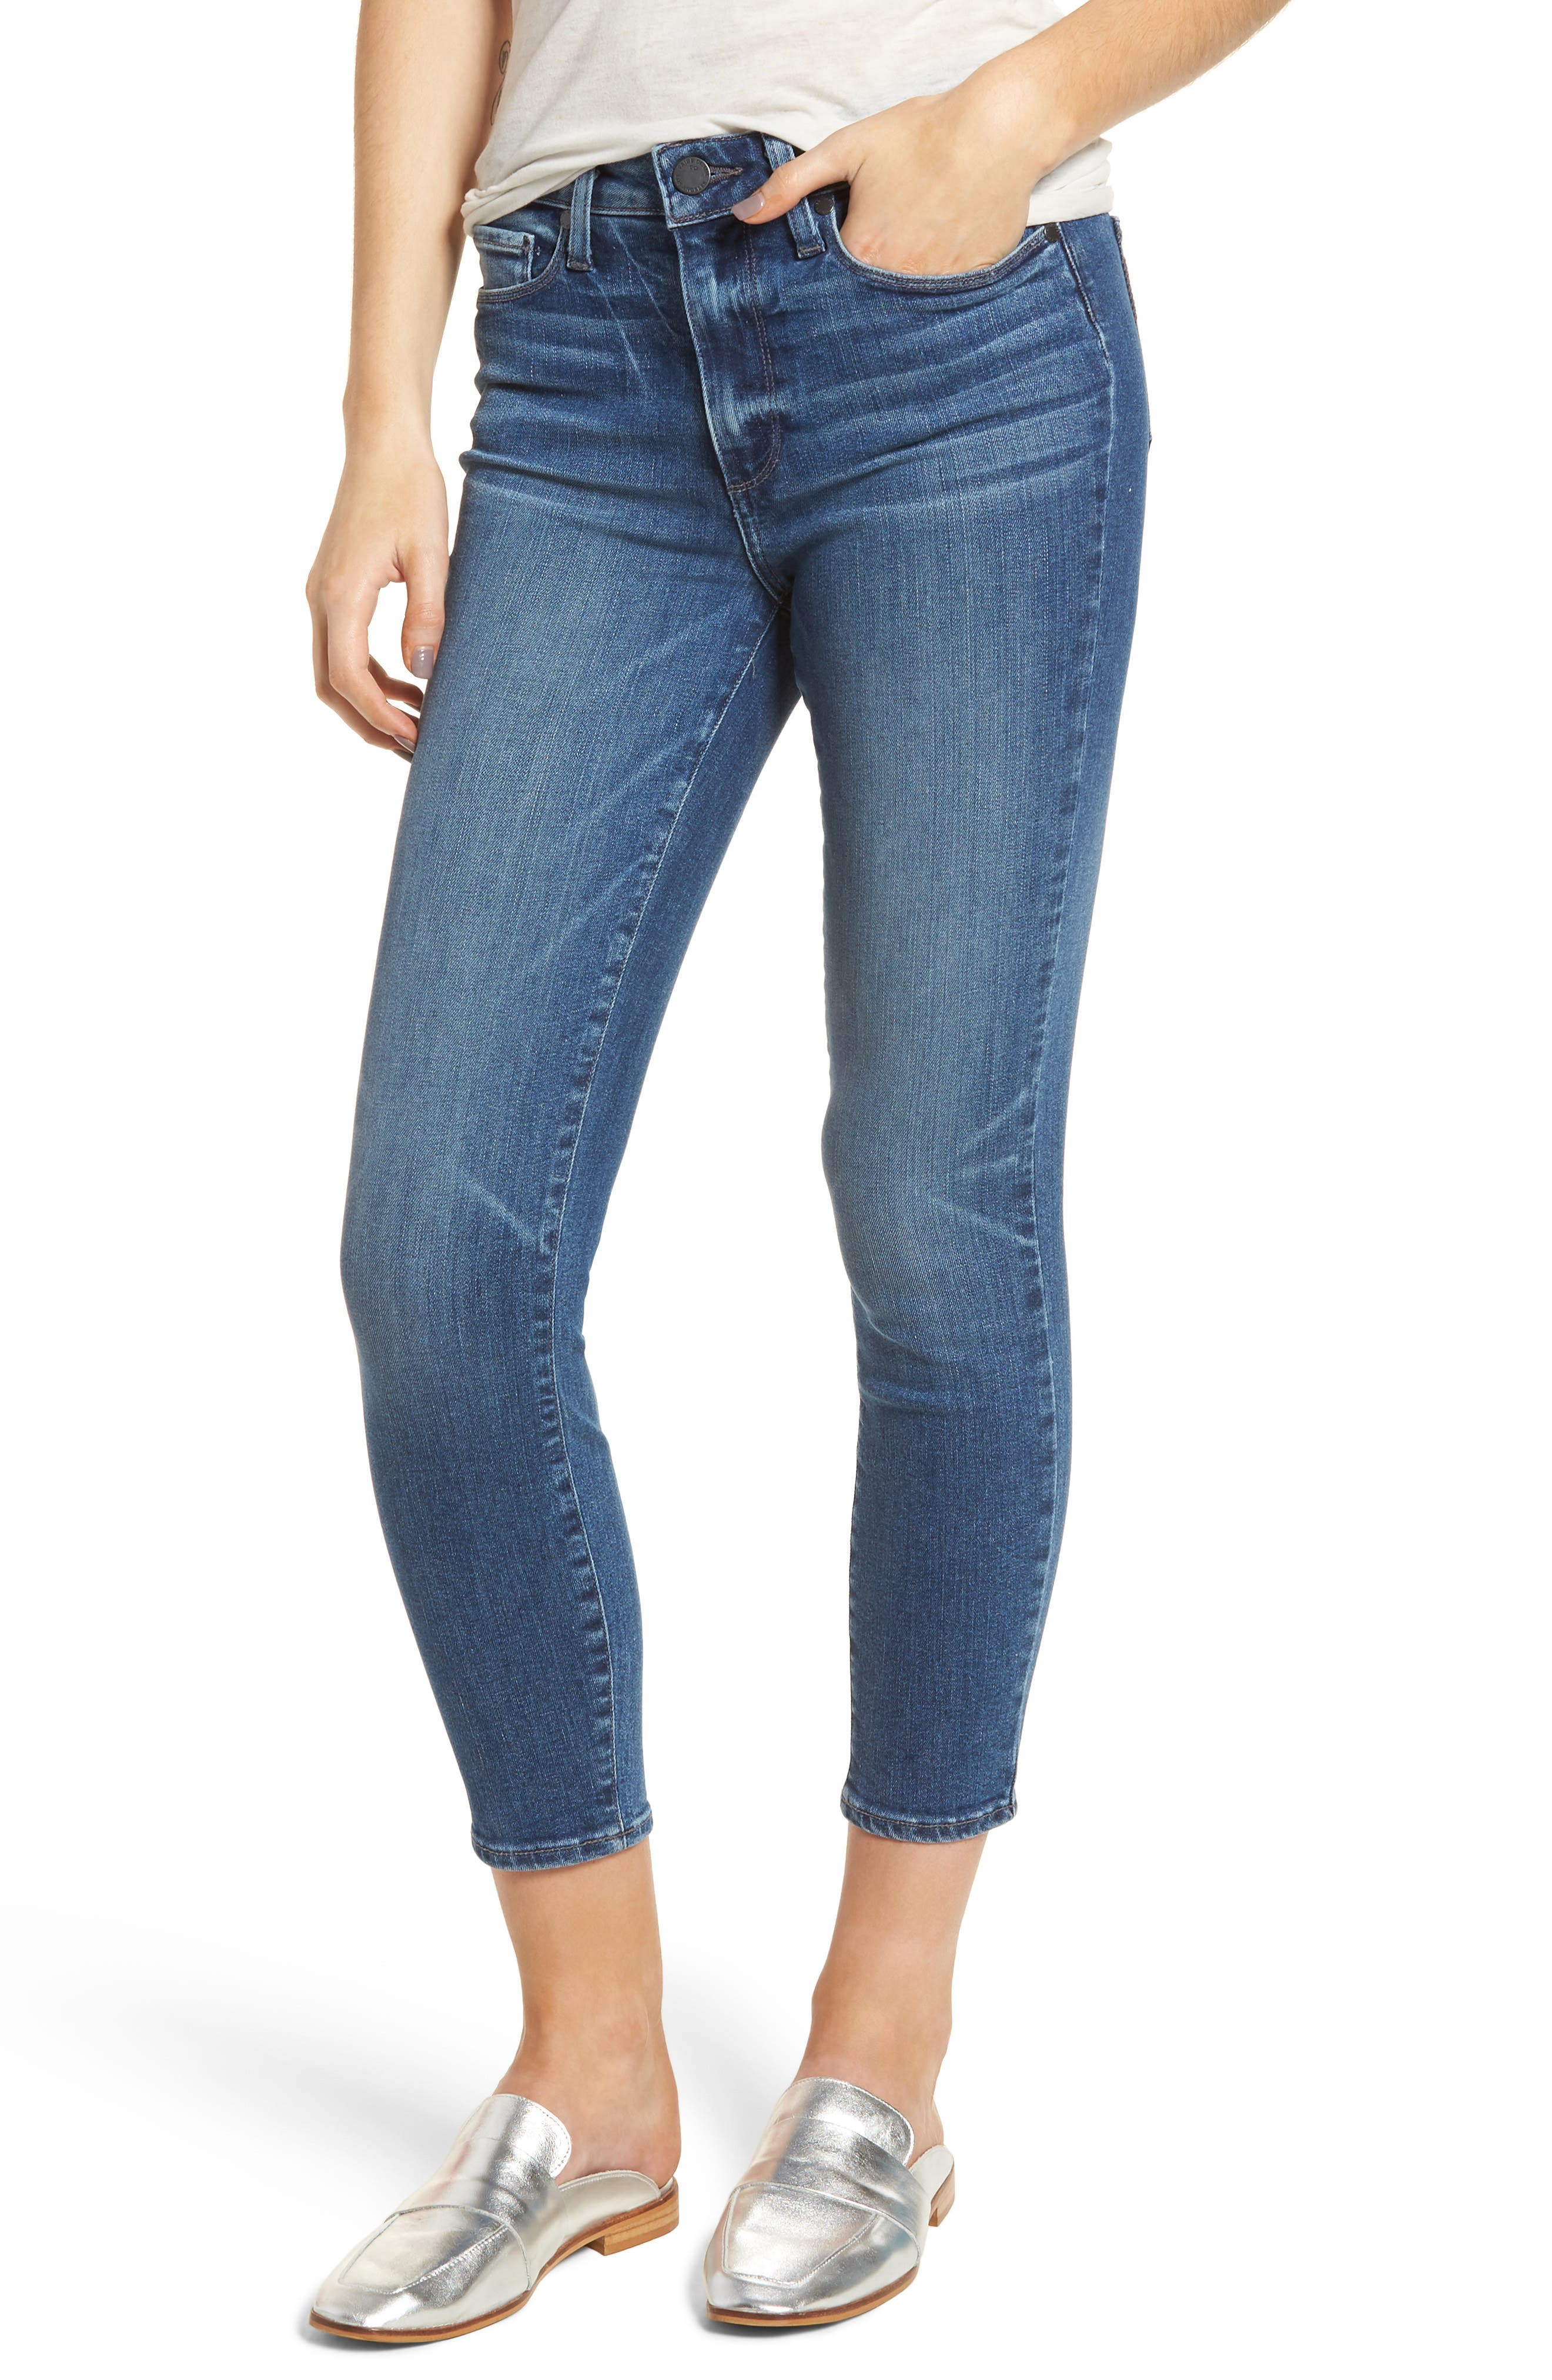 Hoxton High Waist Ankle Skinny Jeans,                             Main thumbnail 1, color,                             Bloomfield